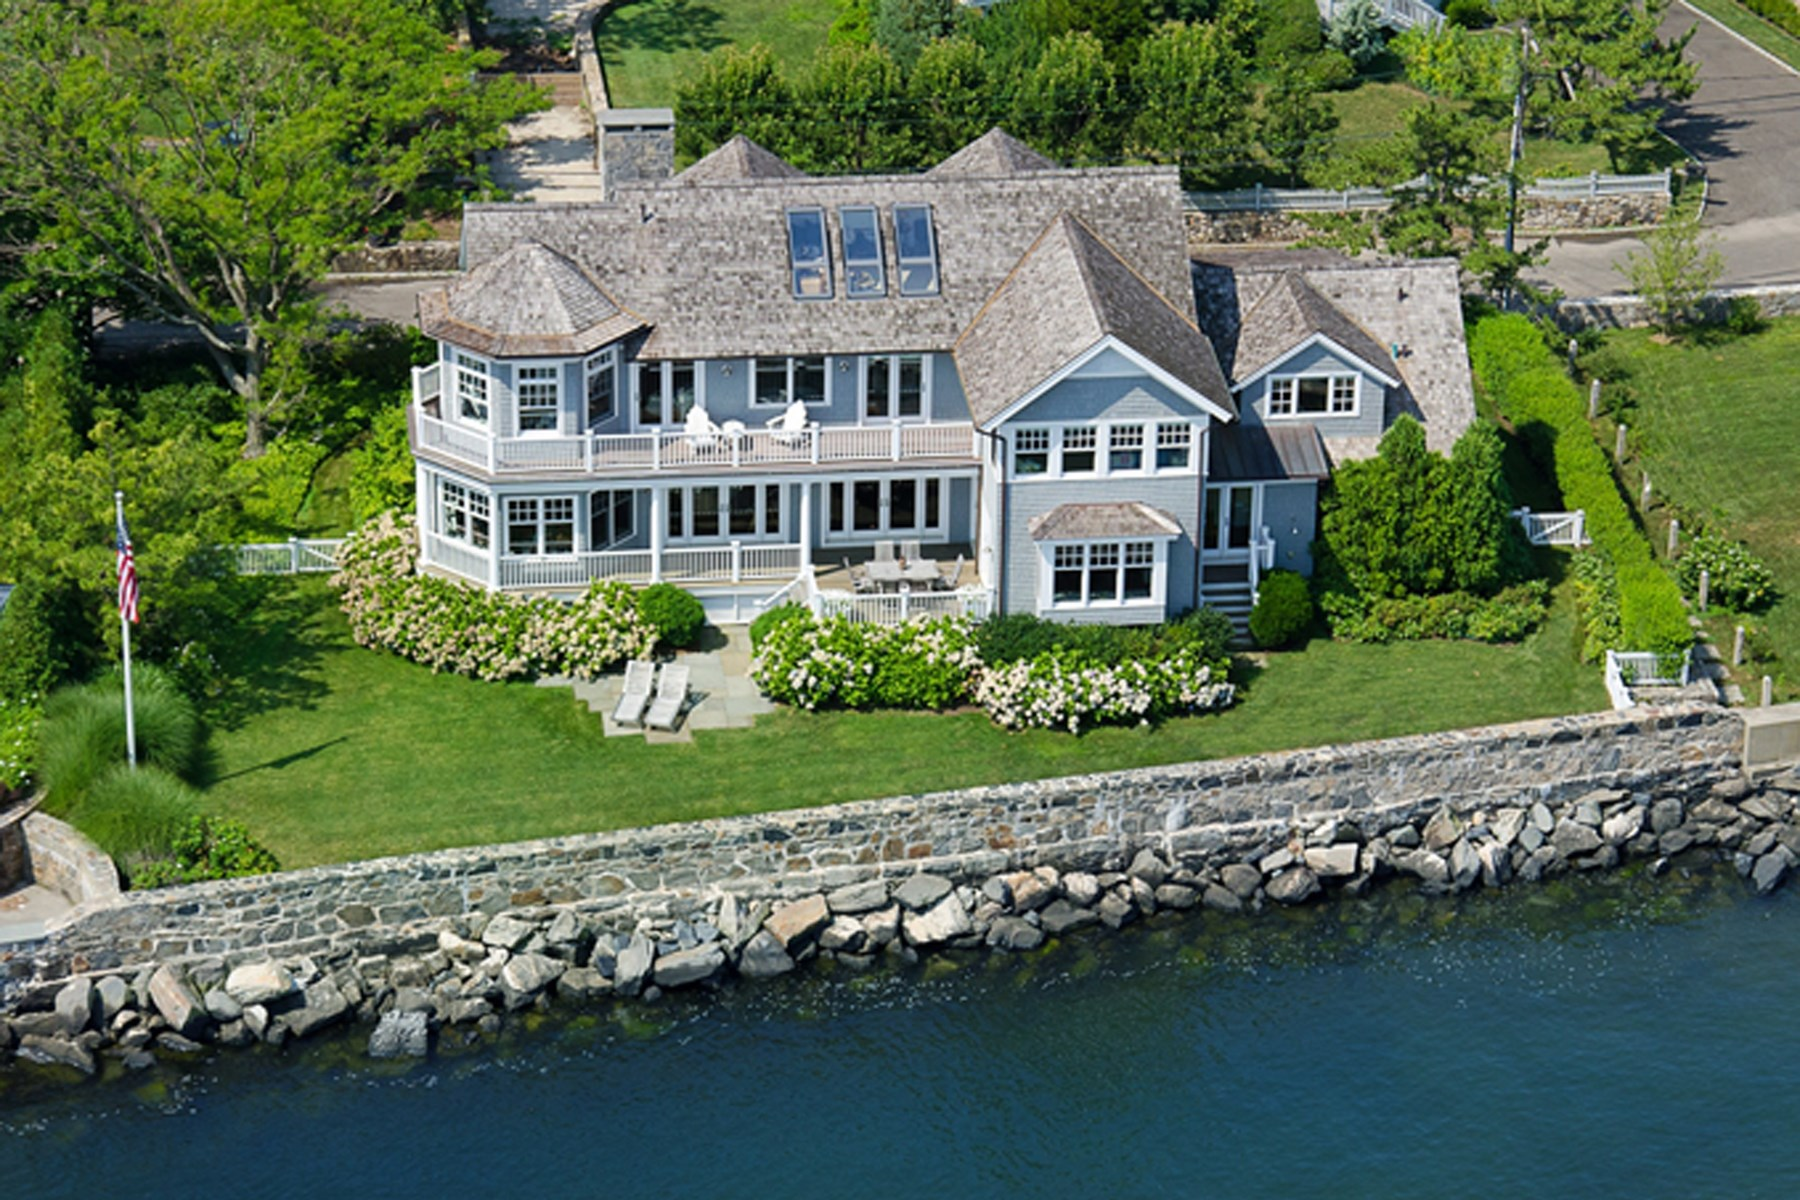 Villa per Vendita alle ore Spectacular Waterfront 15 East Point Lane Old Greenwich, Connecticut, 06870 Stati Uniti